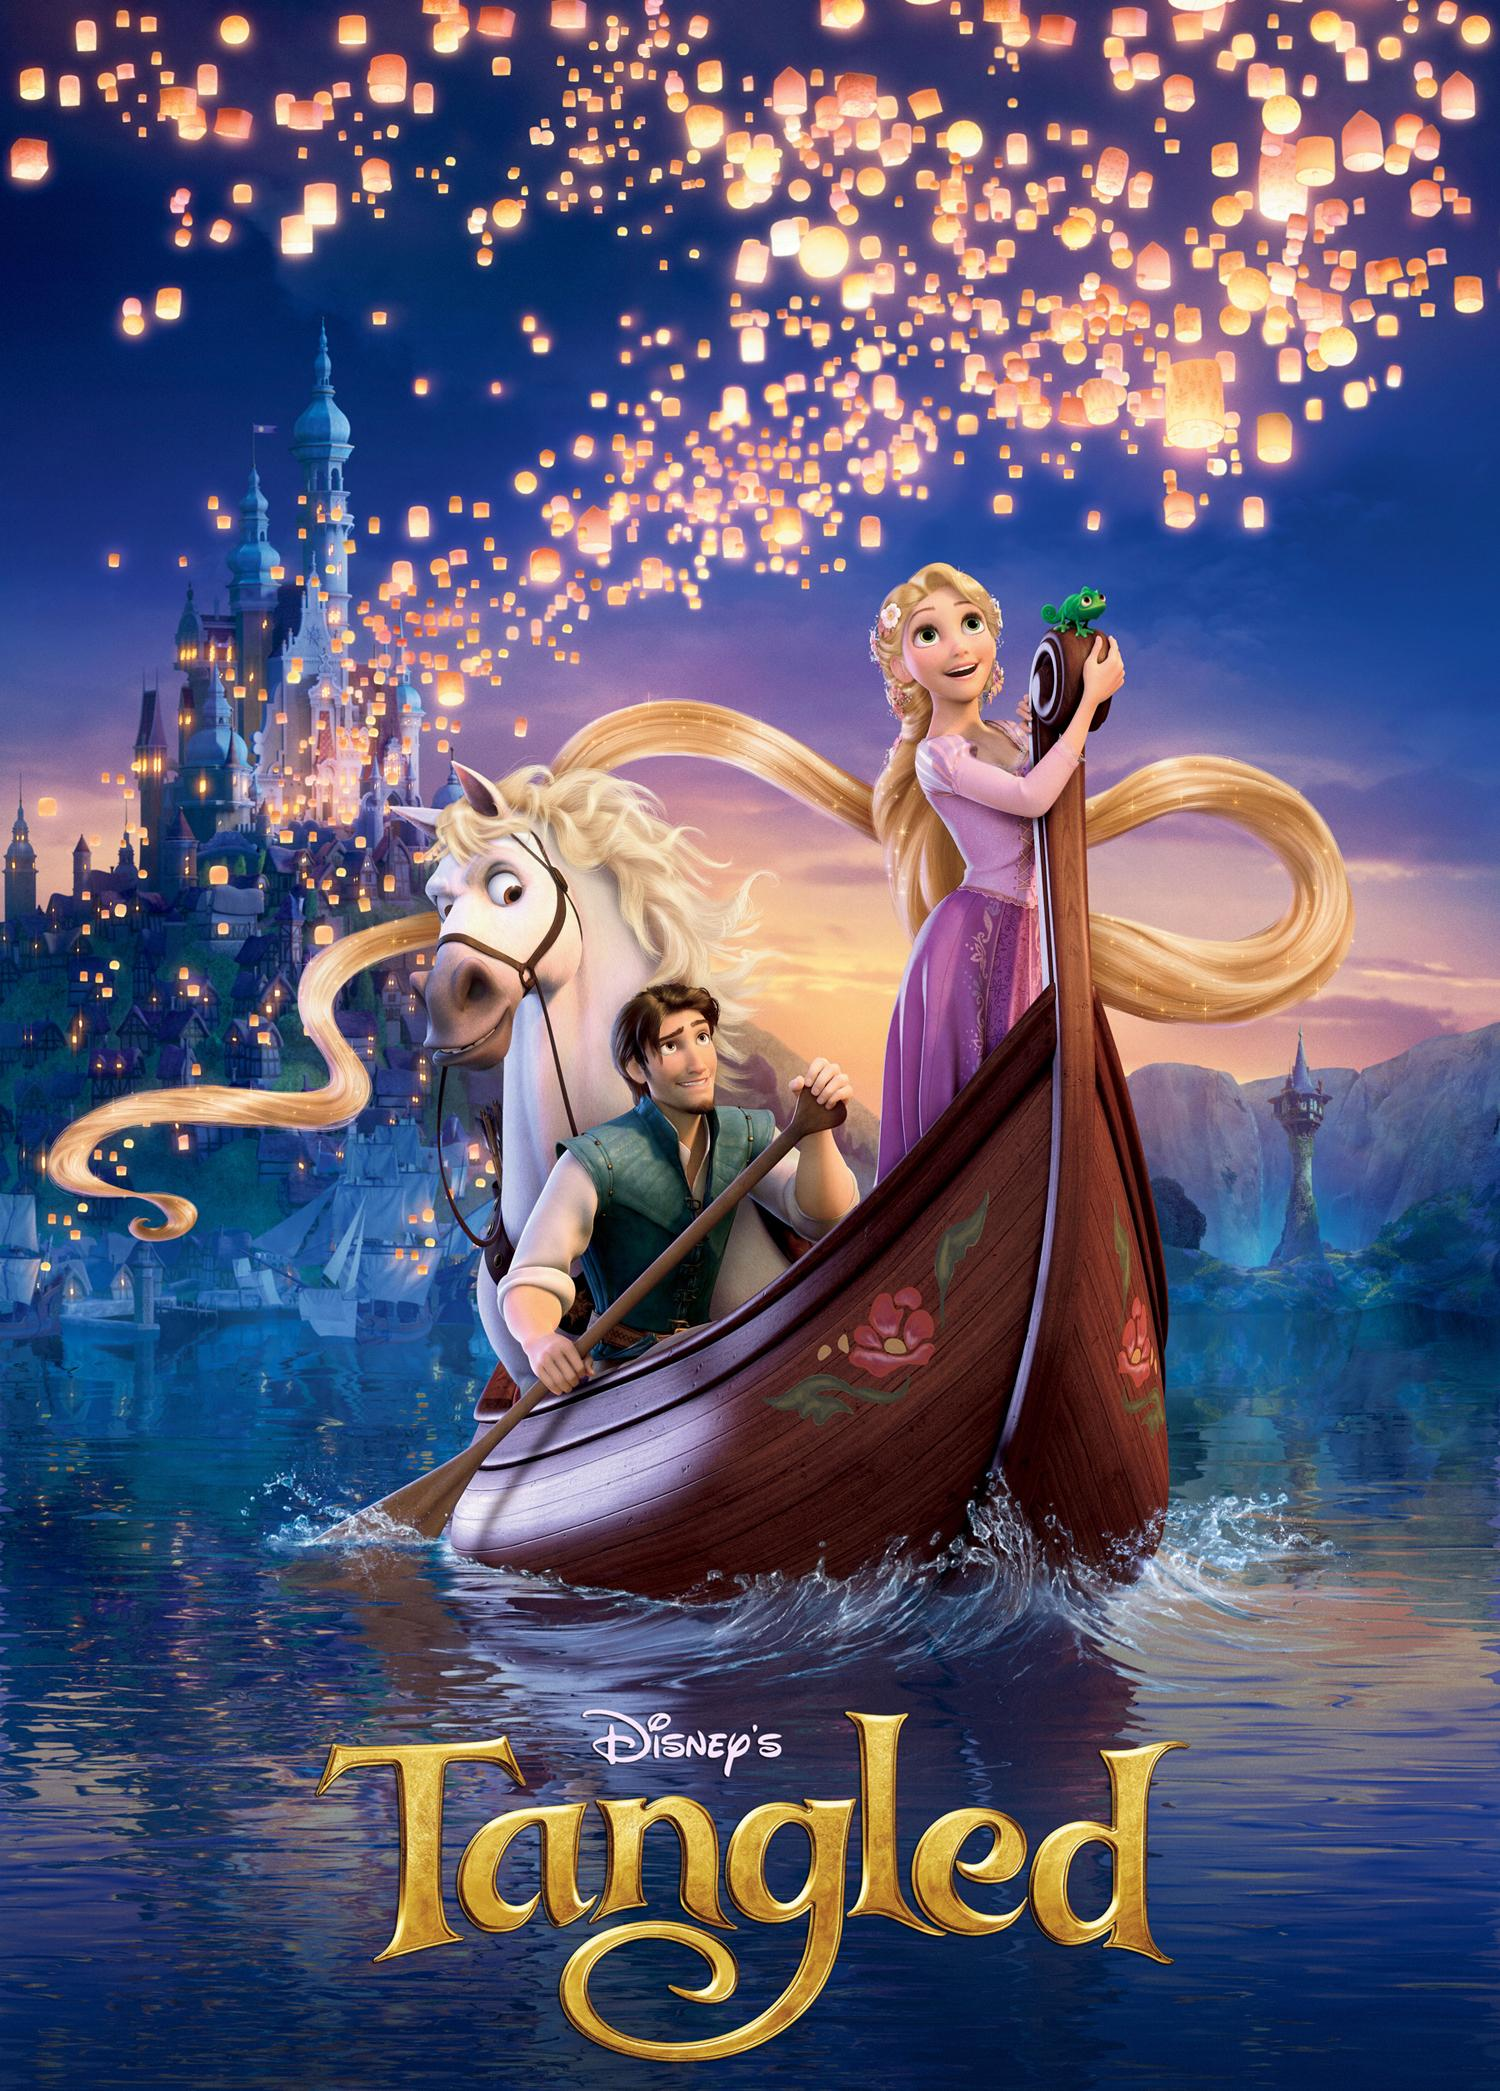 http://www.rotoscopers.com/wp-content/uploads/2013/07/Tangled-Poster.jpg